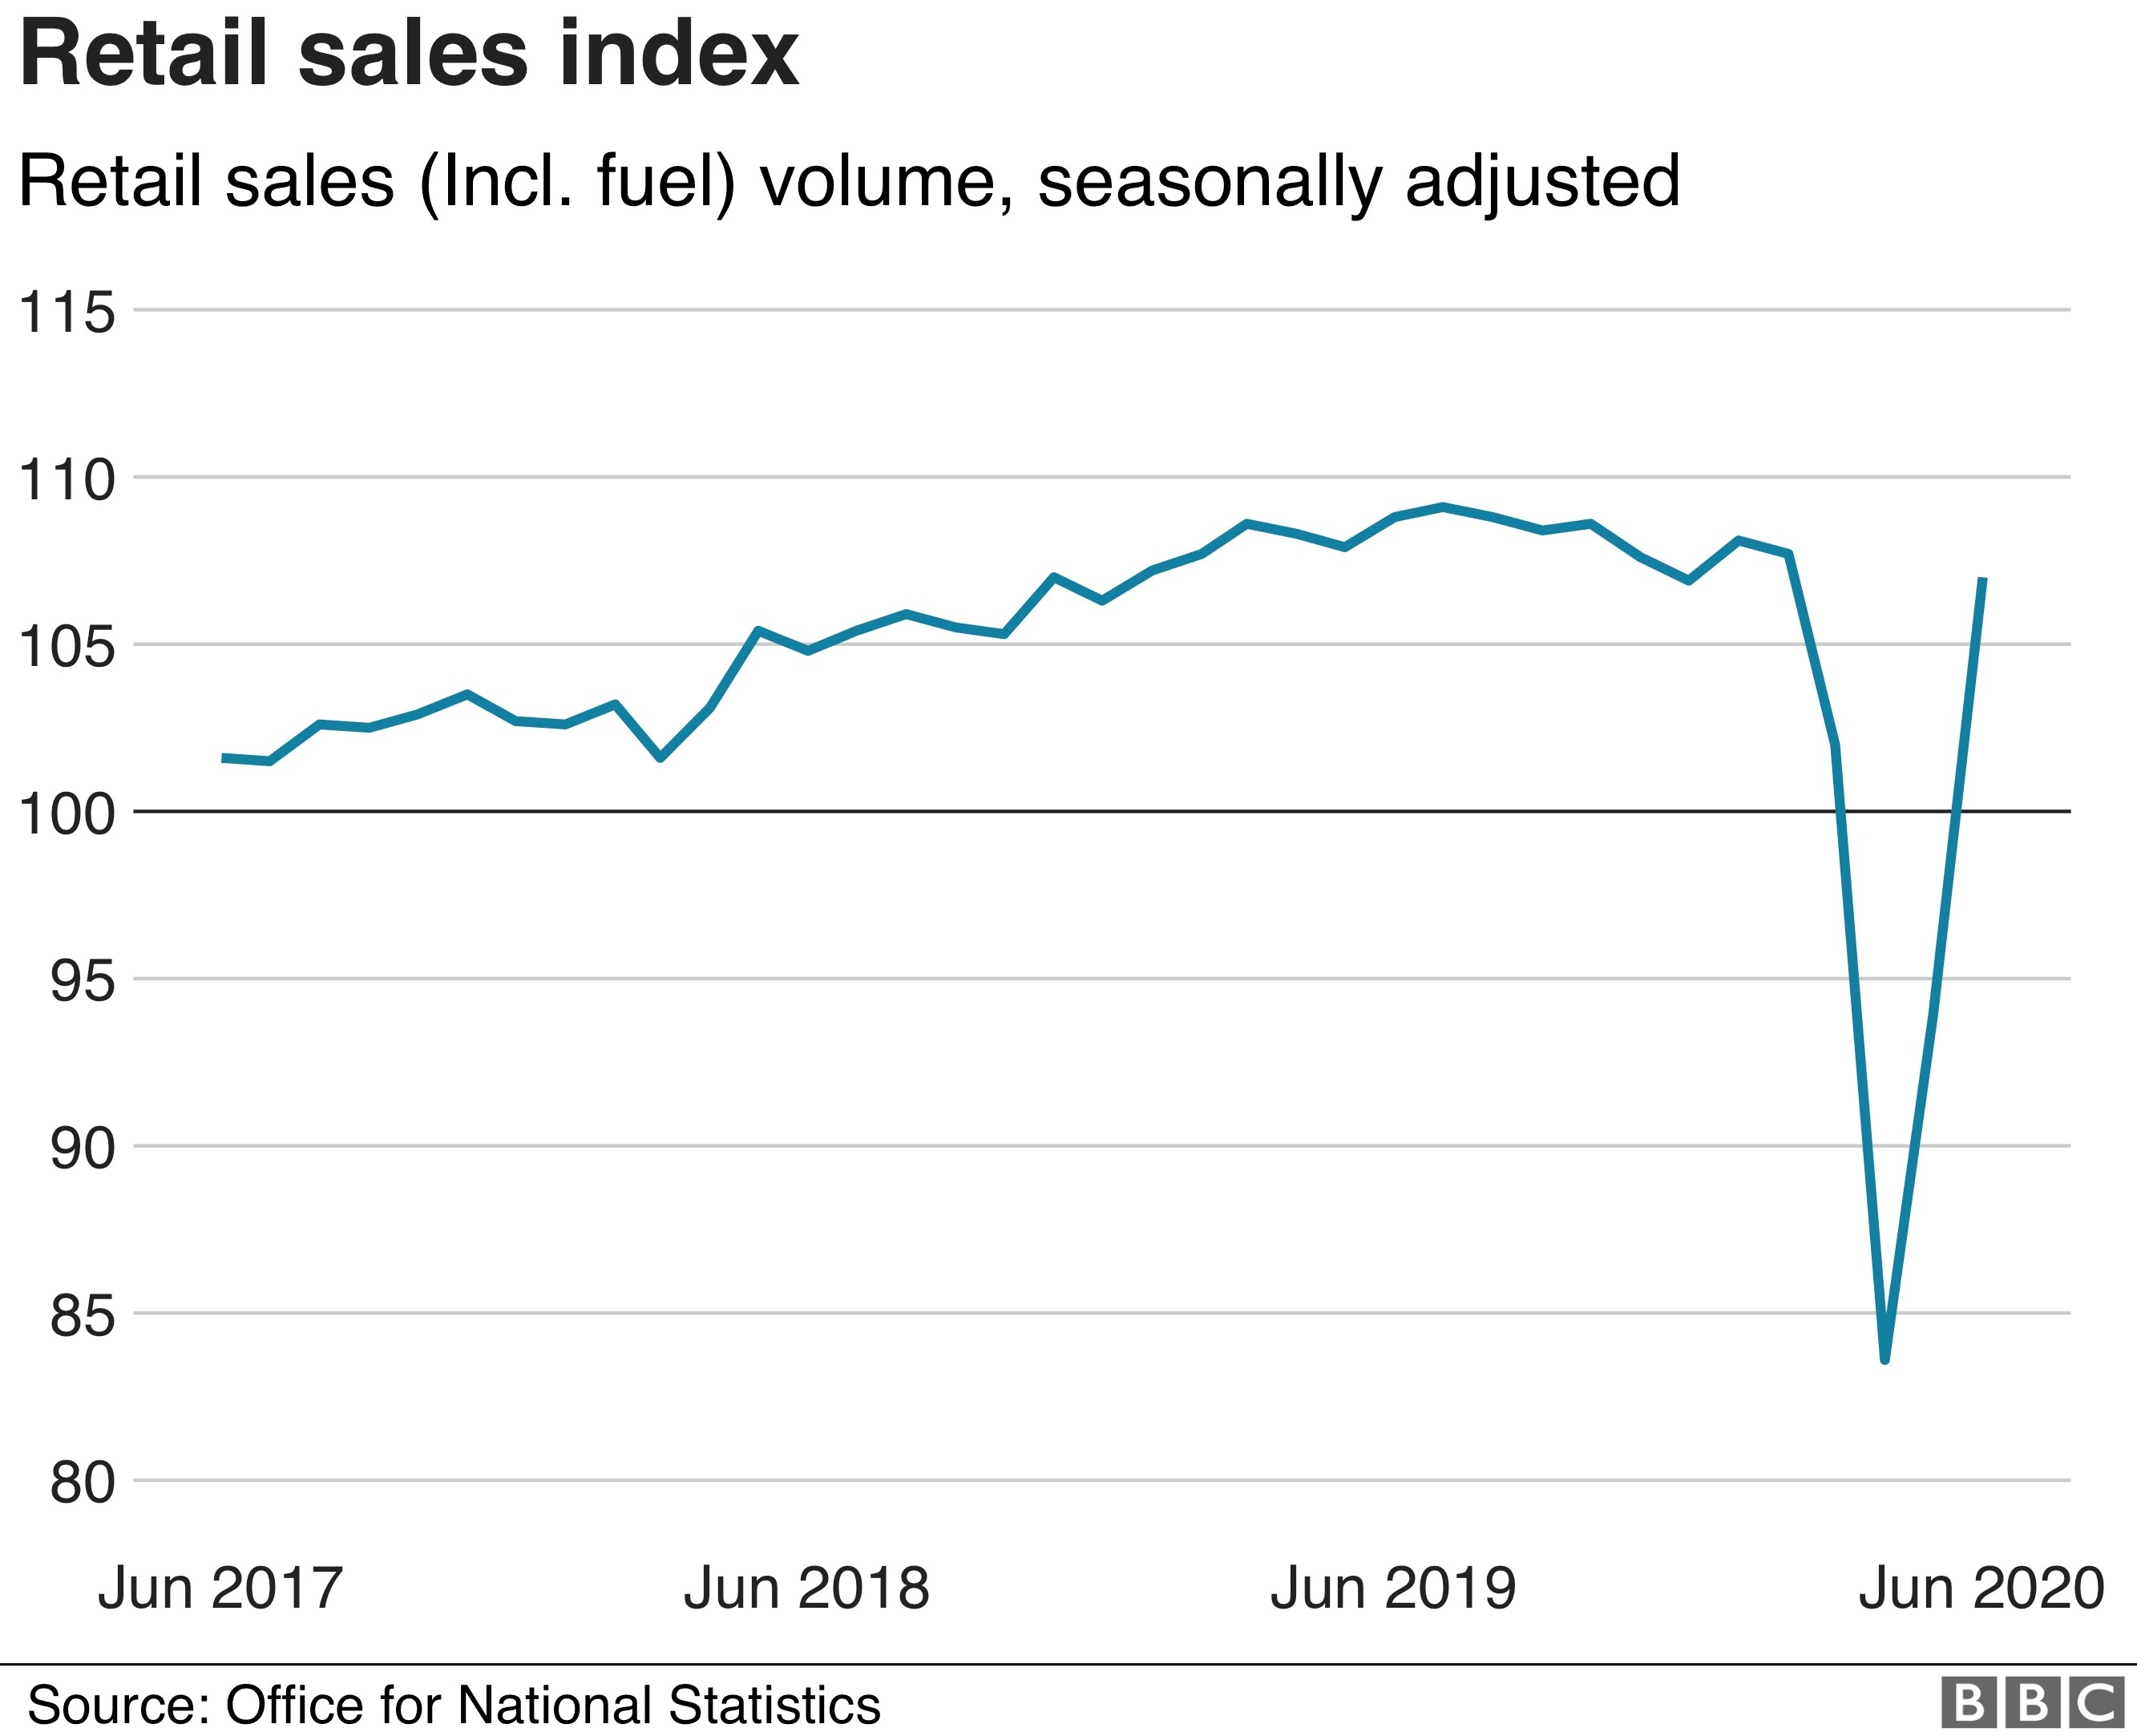 Retail sales from June 2017